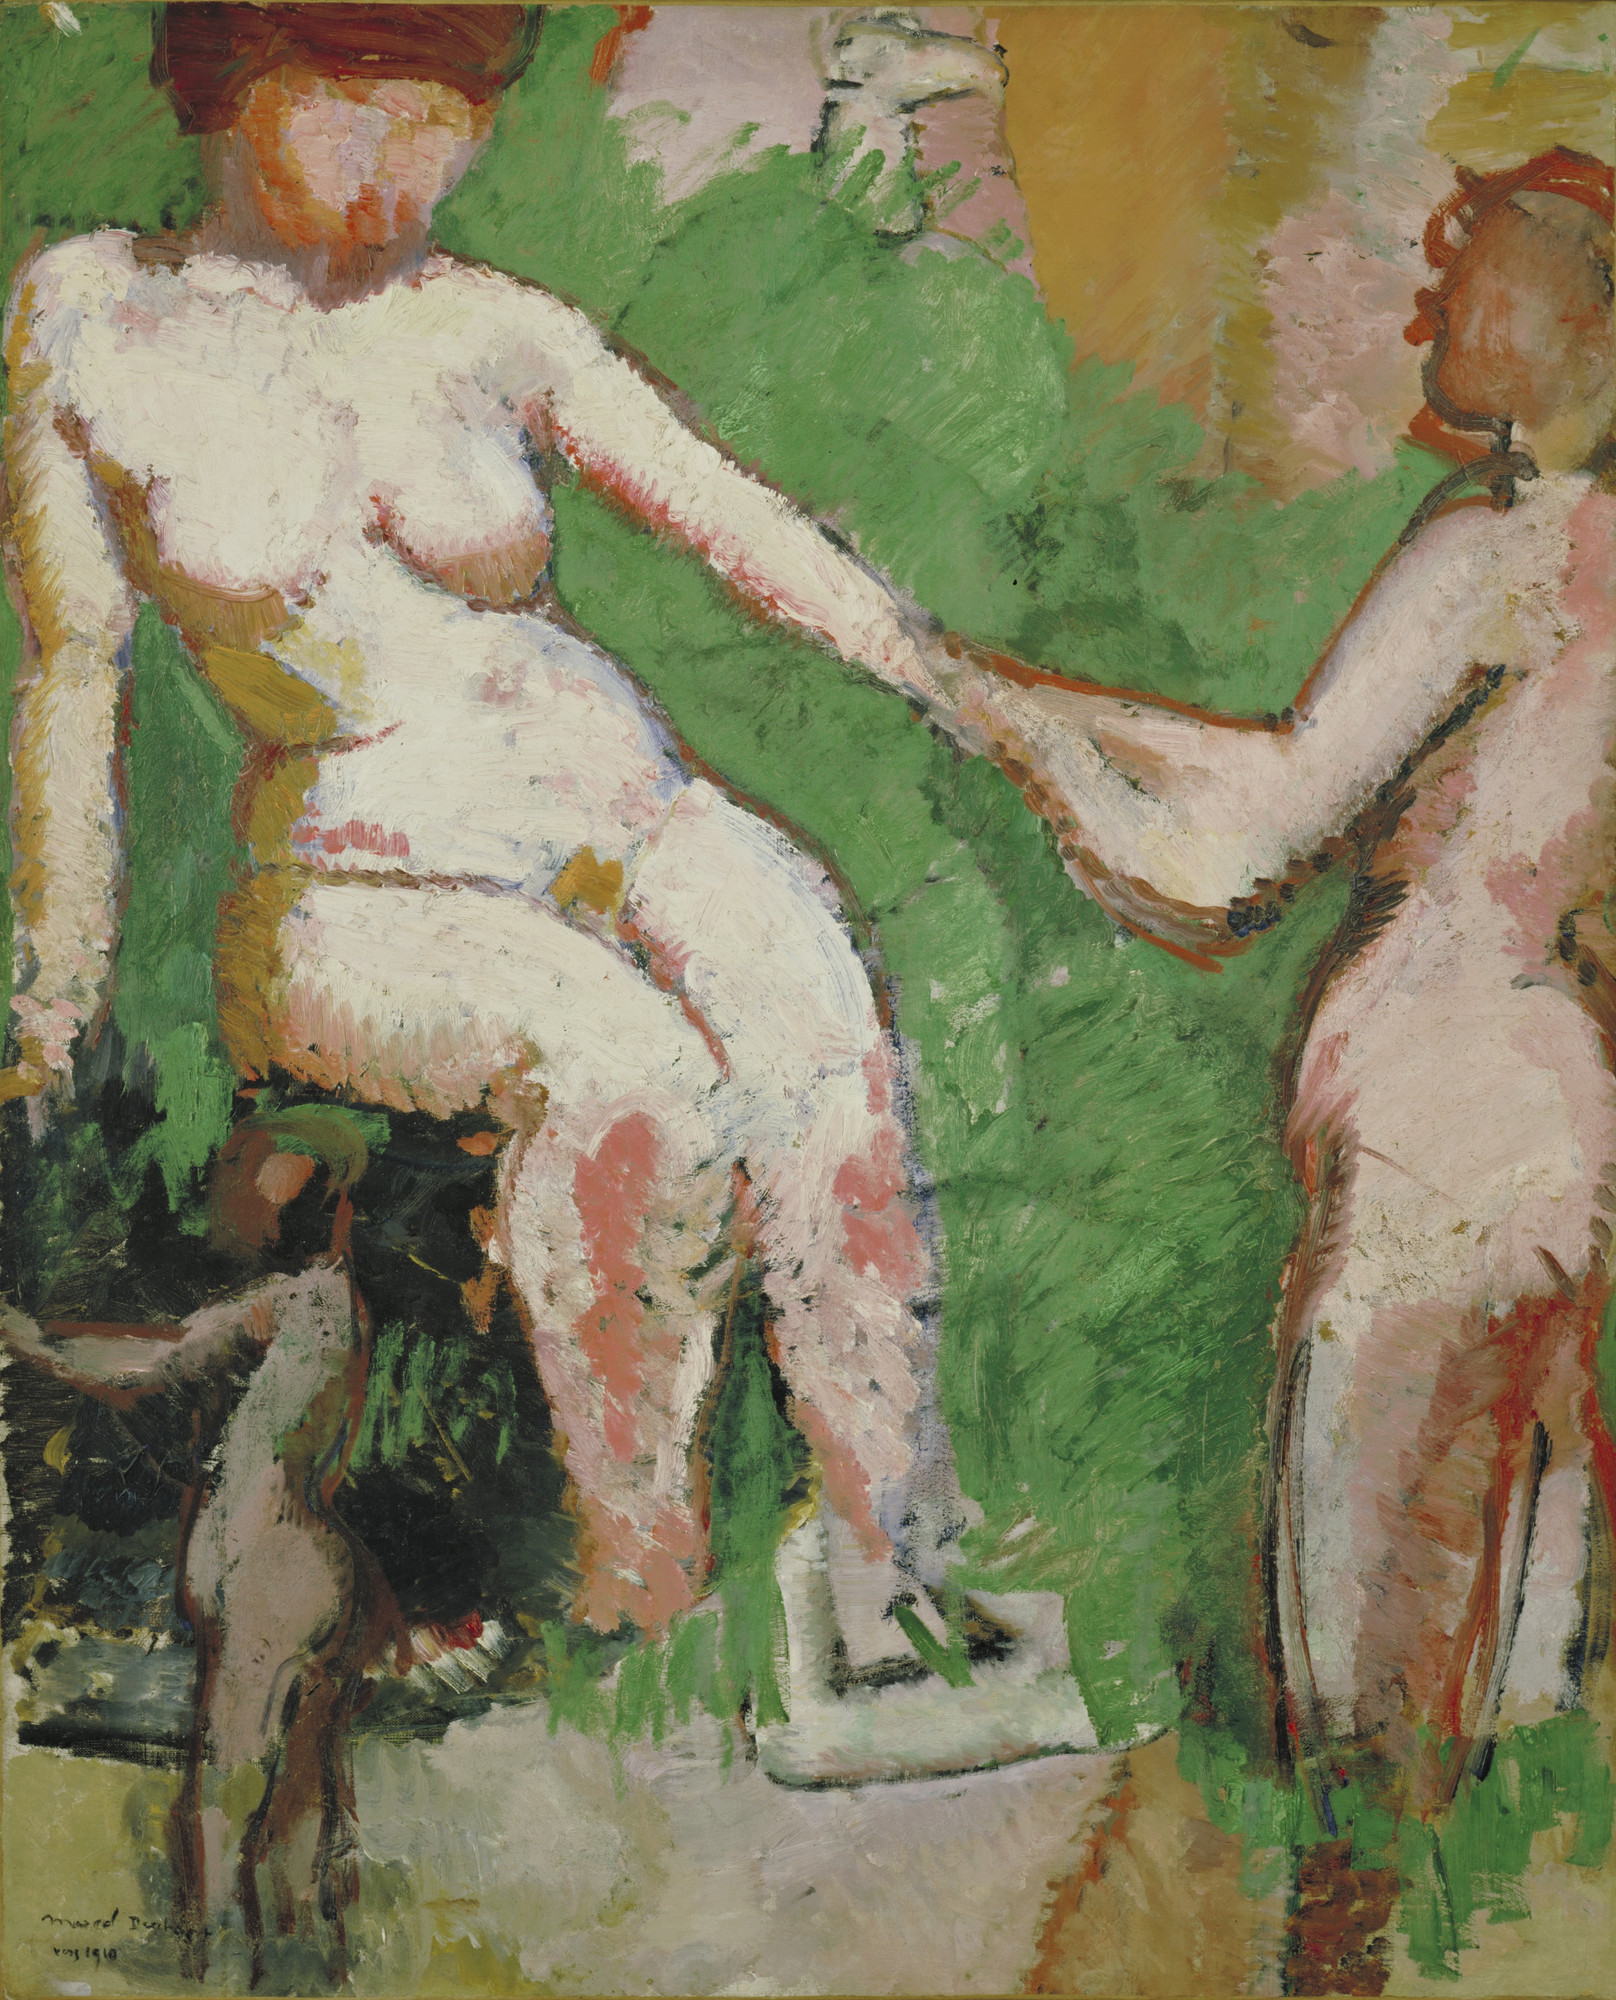 Marcel Duchamp. Two Nudes. 1910